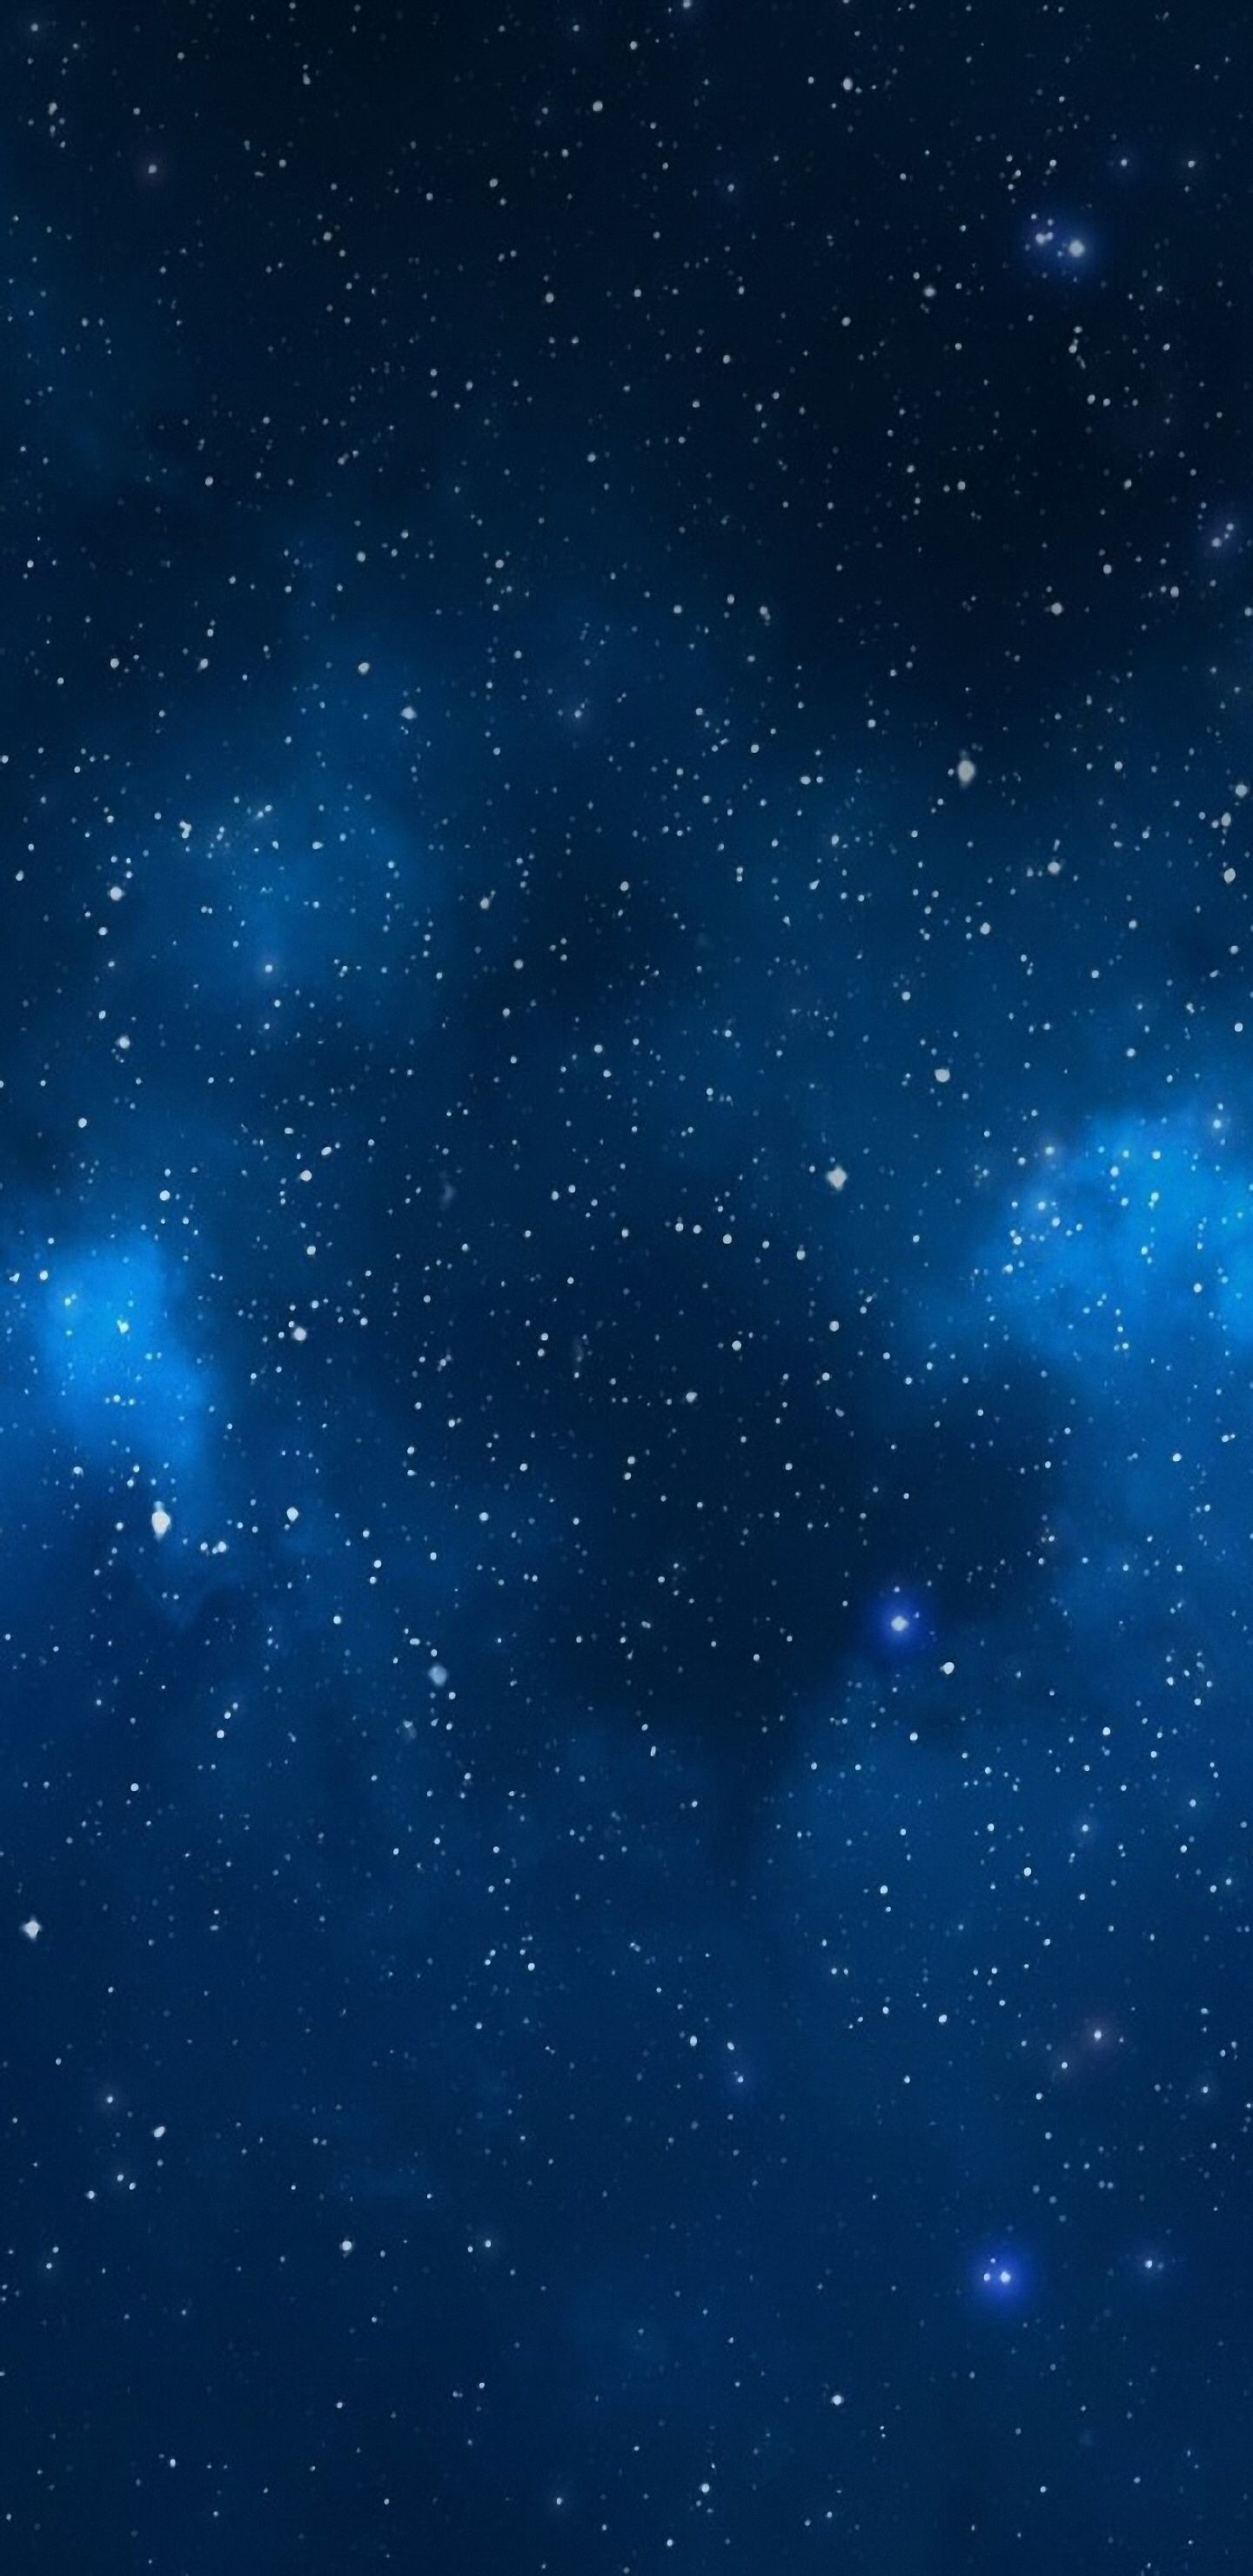 Wallpaper Of Galaxies Posted By Michelle Anderson